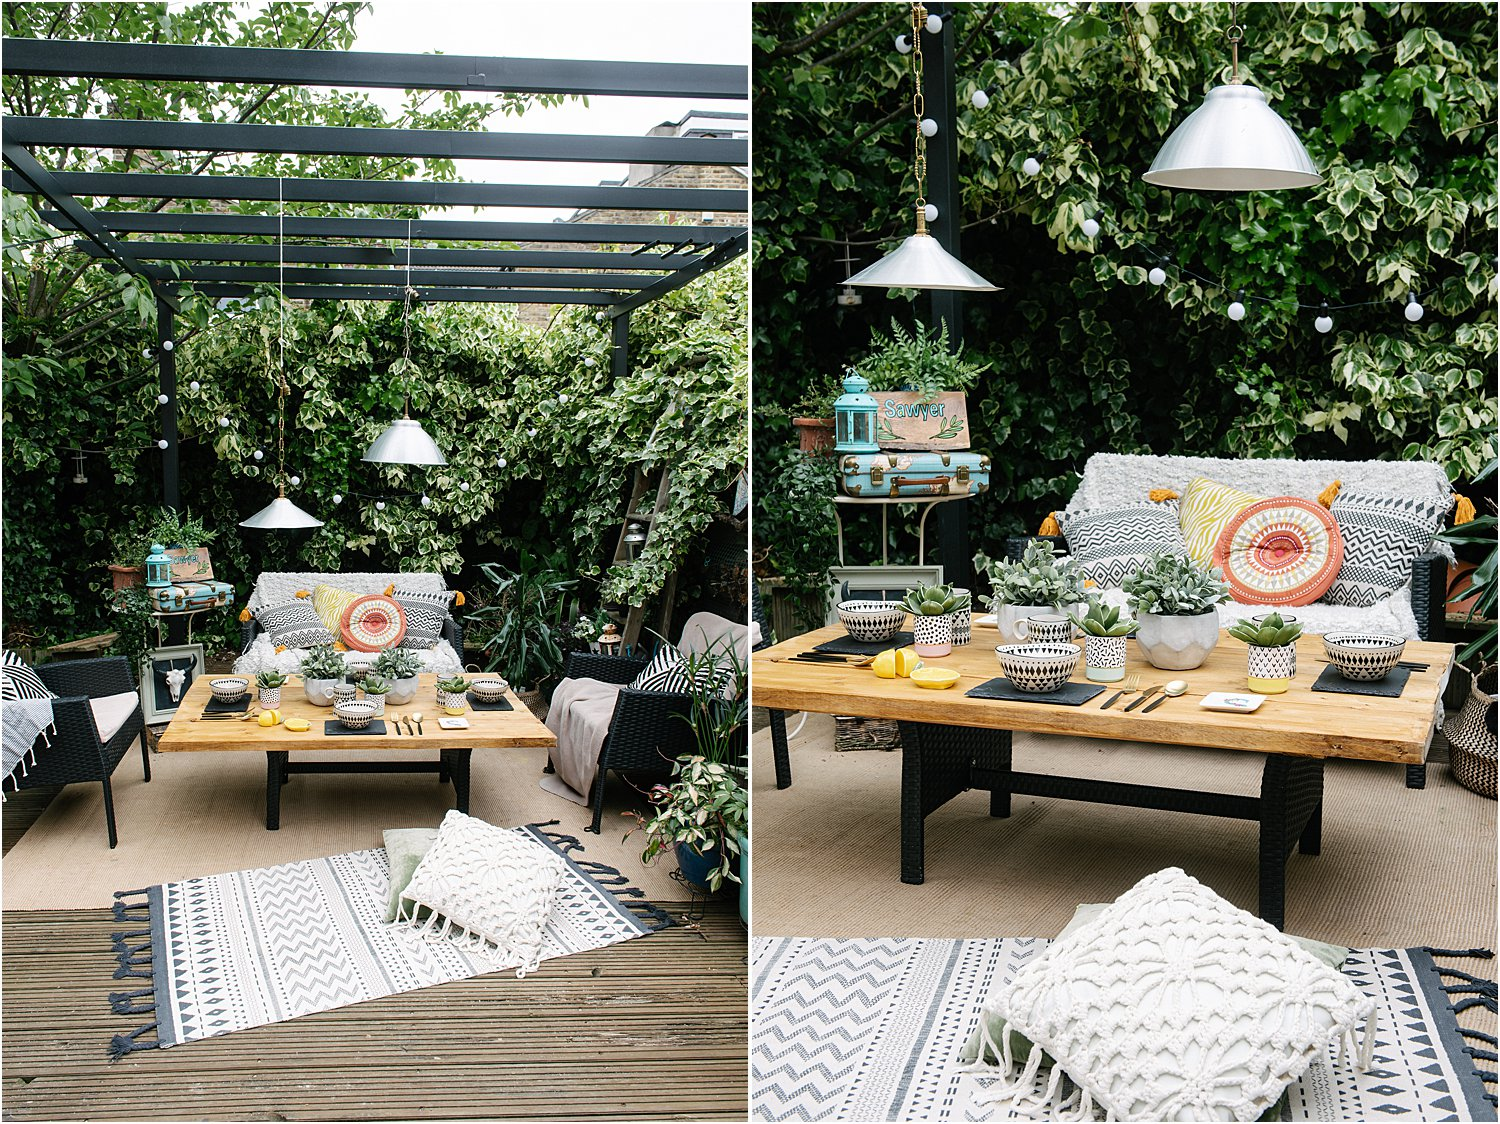 outdoor-garden-indoor-table-styling-sass-and-belle-layered-home-eclectic-interiors-lily-sawyer-photo